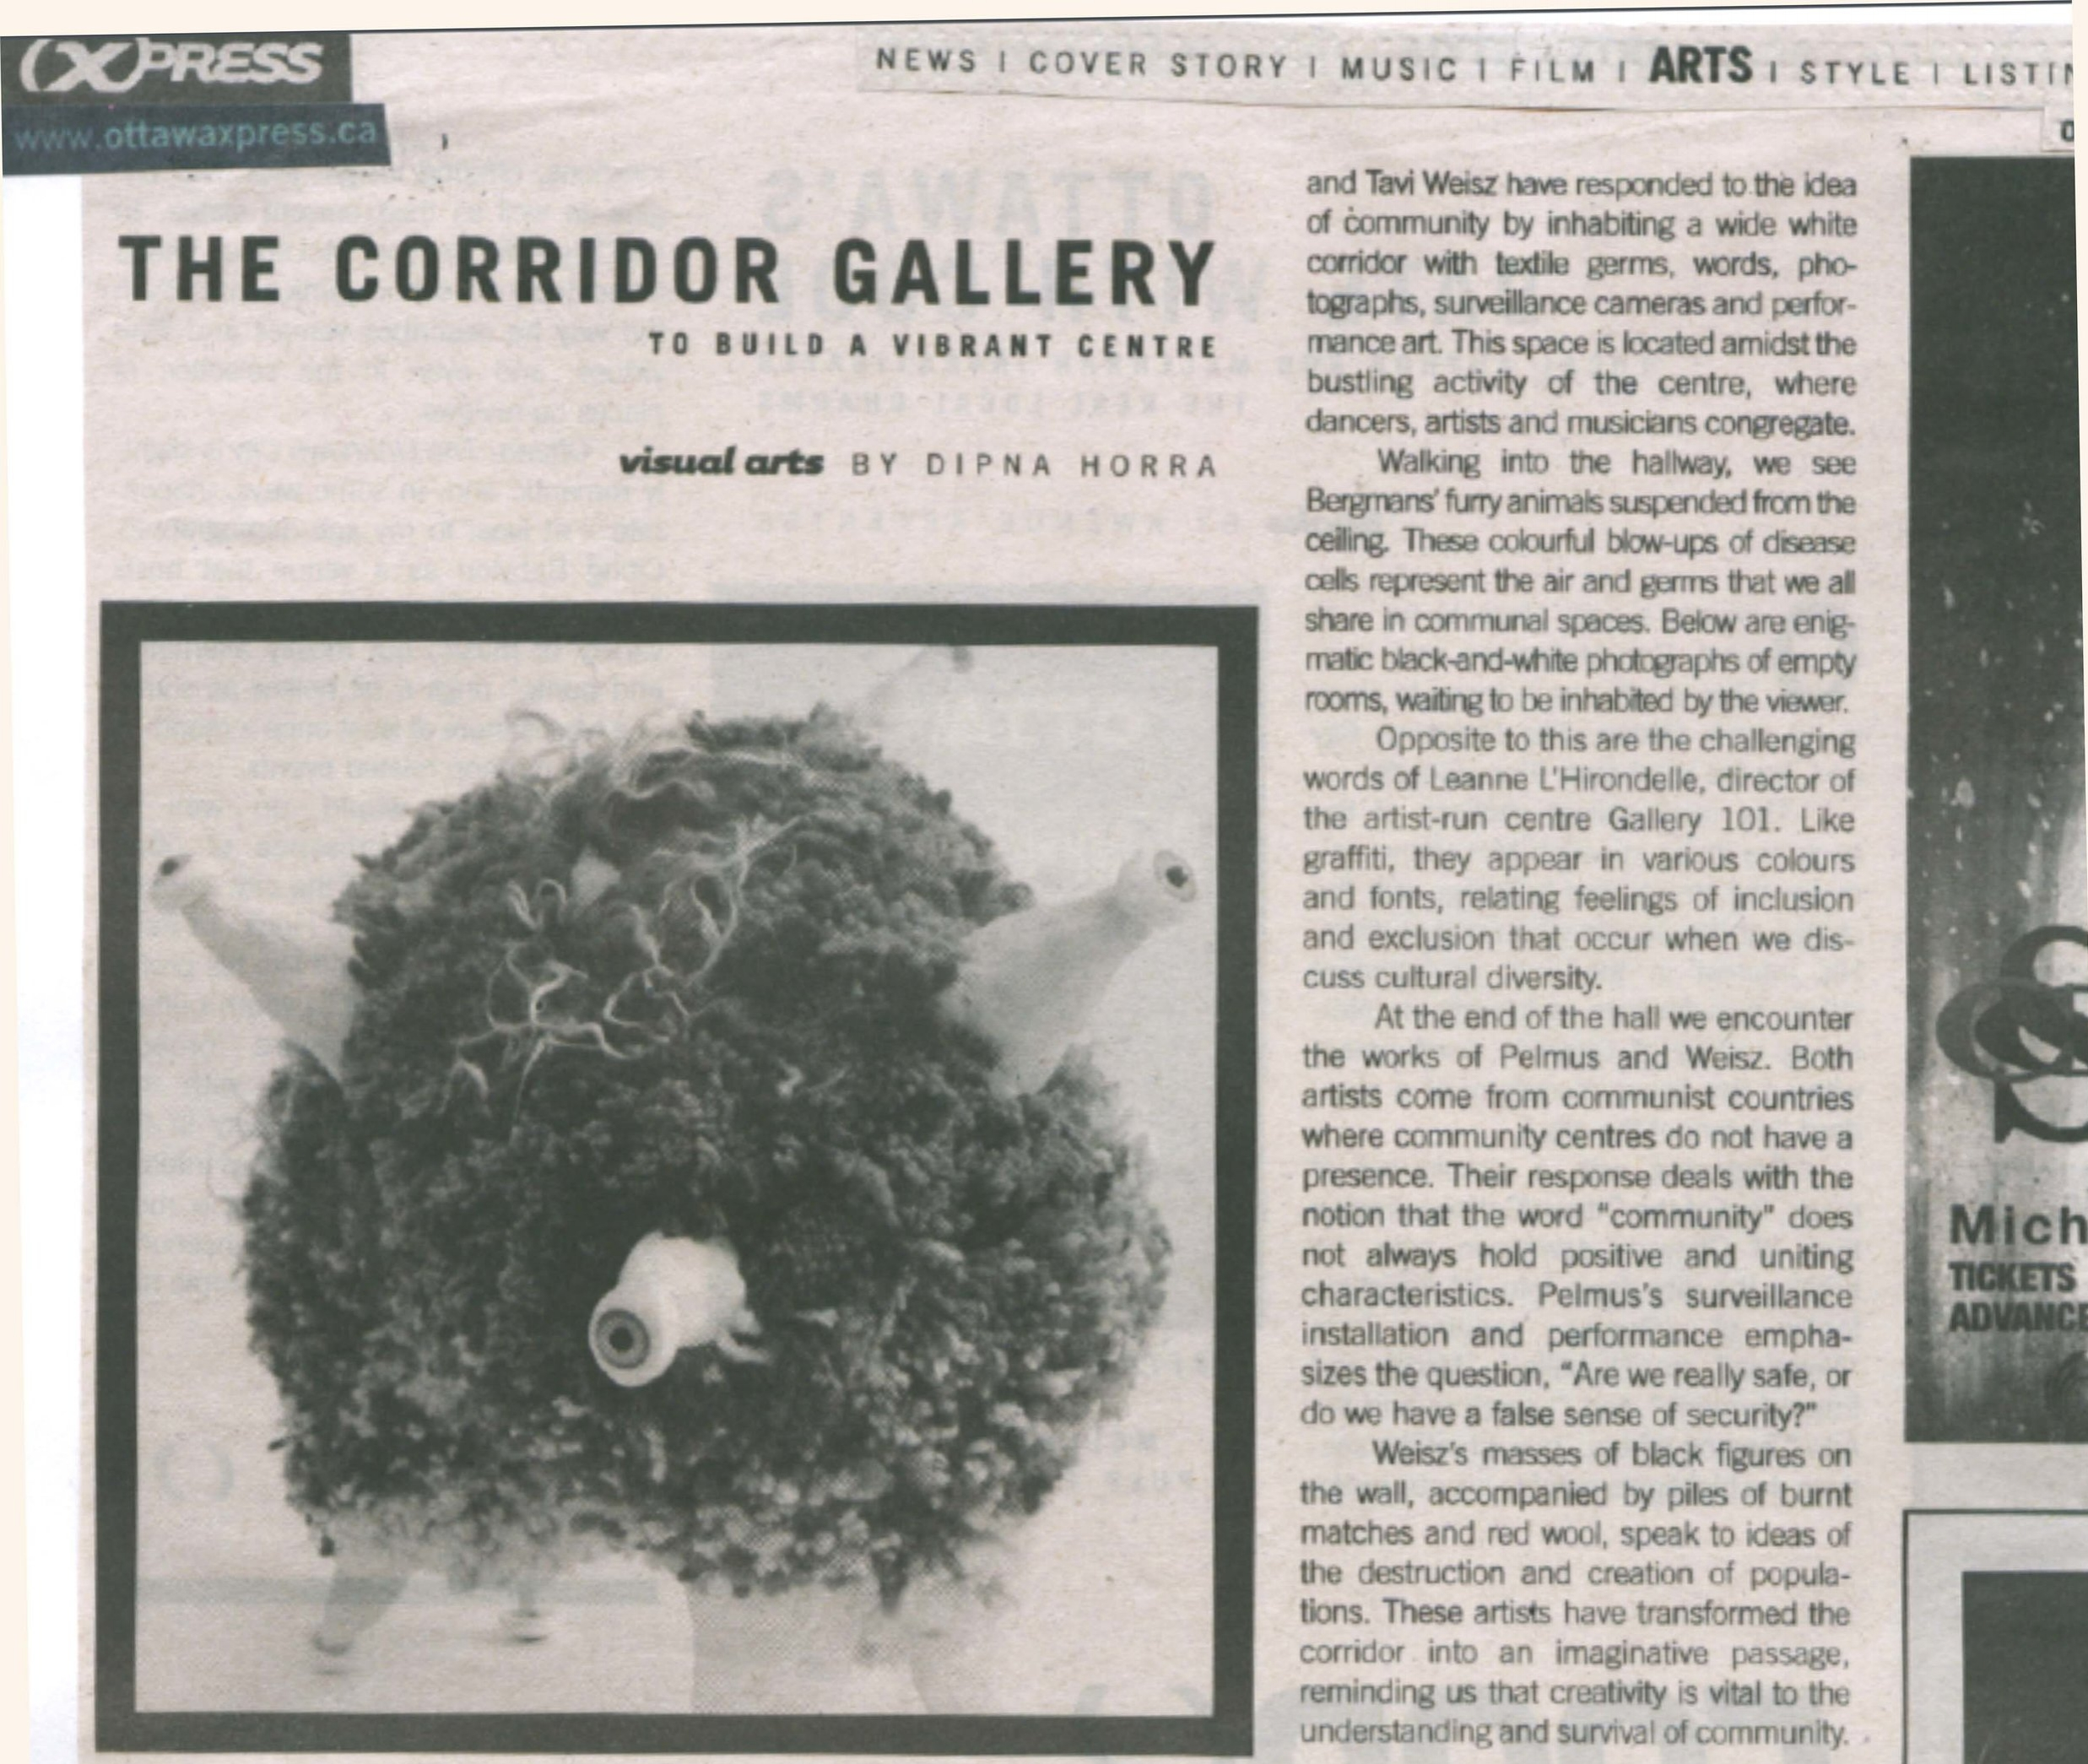 The Corridor Gallery: To Build a Vibrant Centre, by Dipna Horra, Ottawa Xpress, April 2008